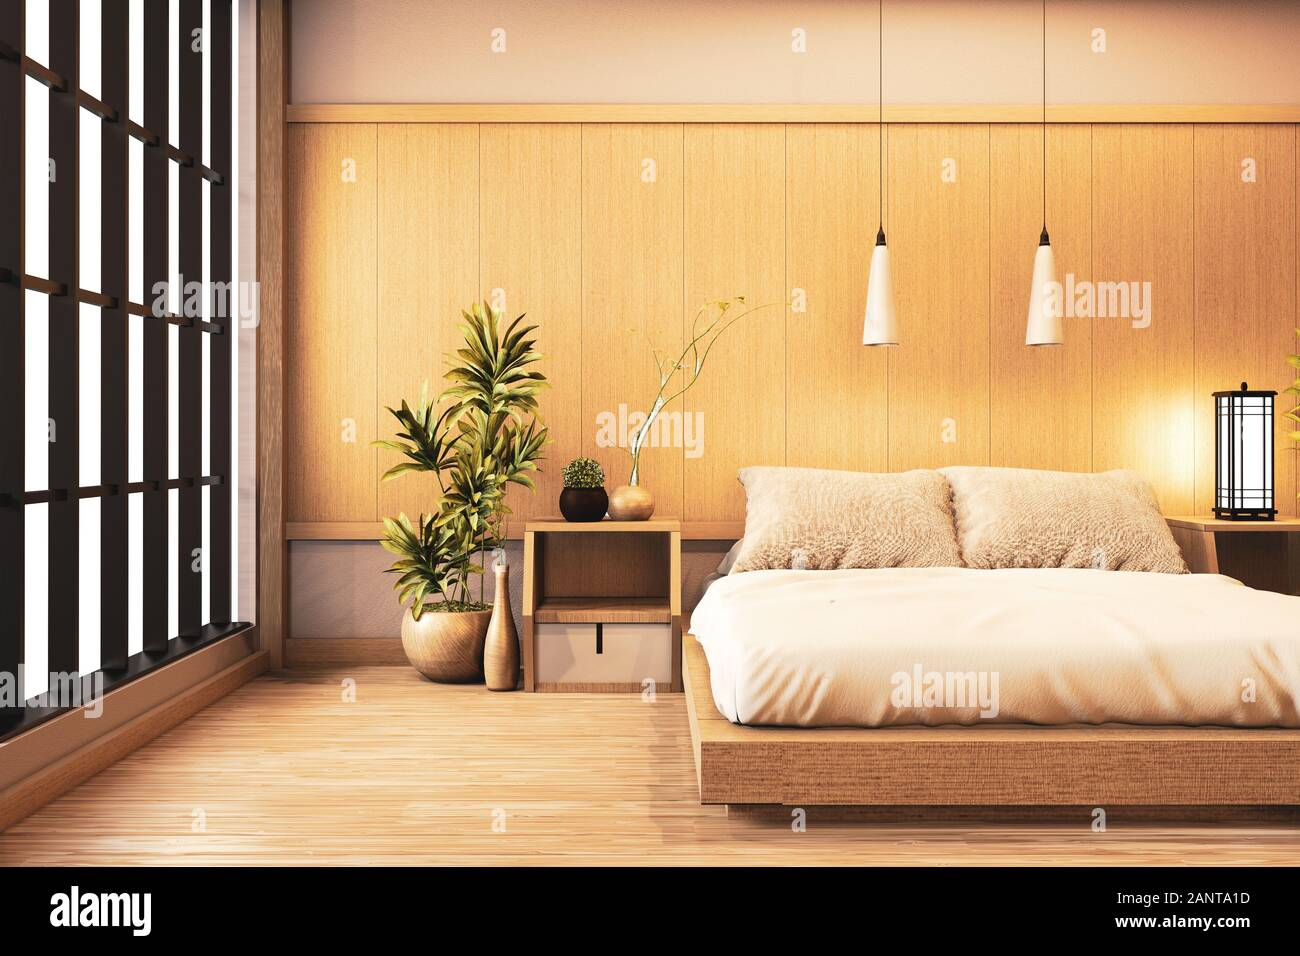 Japanese Bedroom Designs With Showing Modern And Minimalist Outlook Inside Roohome